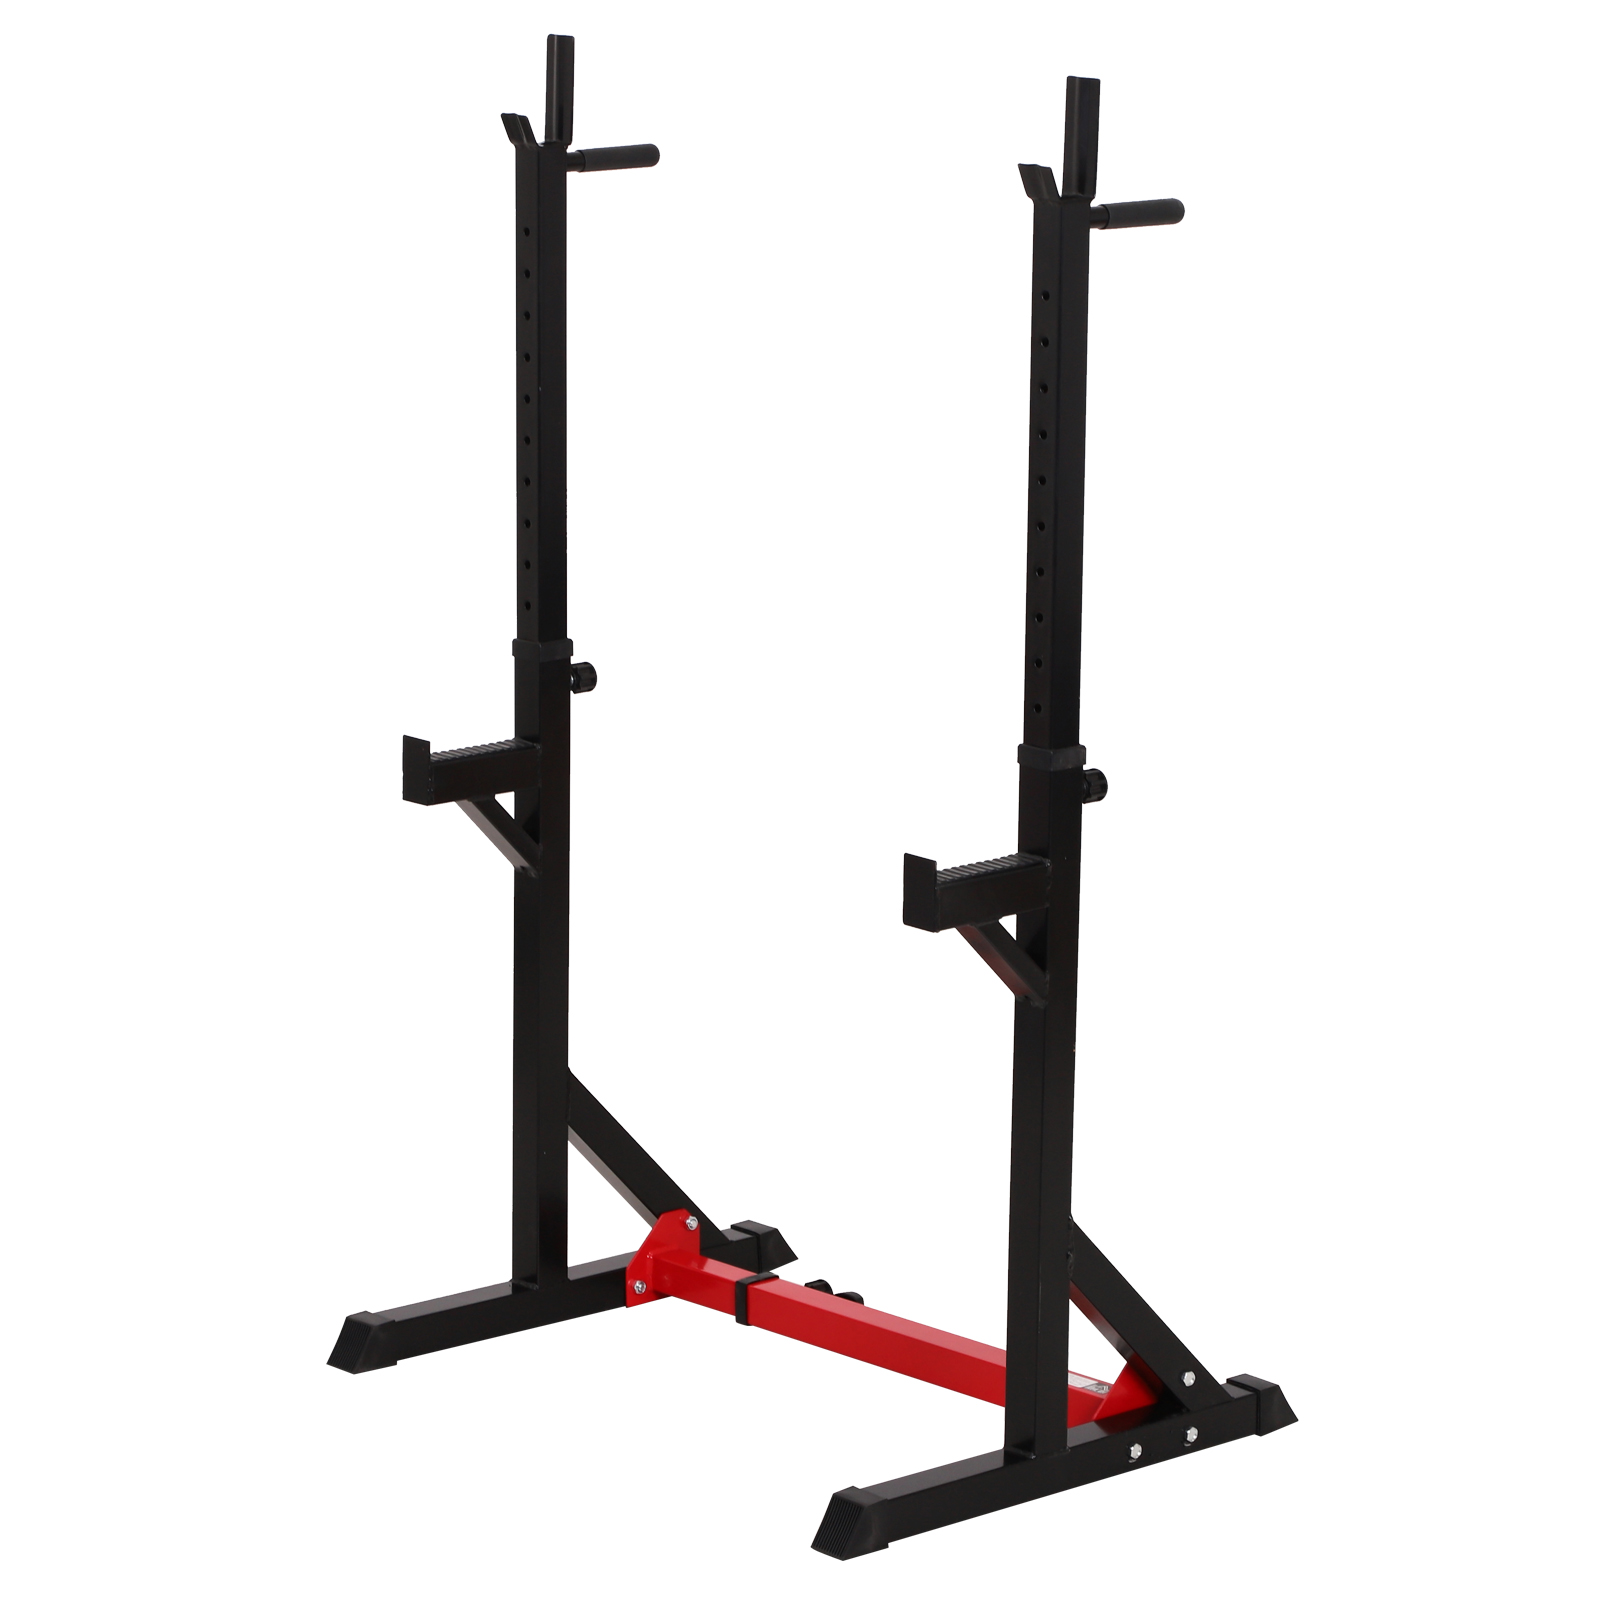 Dipping Station Barbell Rack ZGstore Adjustable Squat Rack Dip Stand Fitness Bench for Men and Women